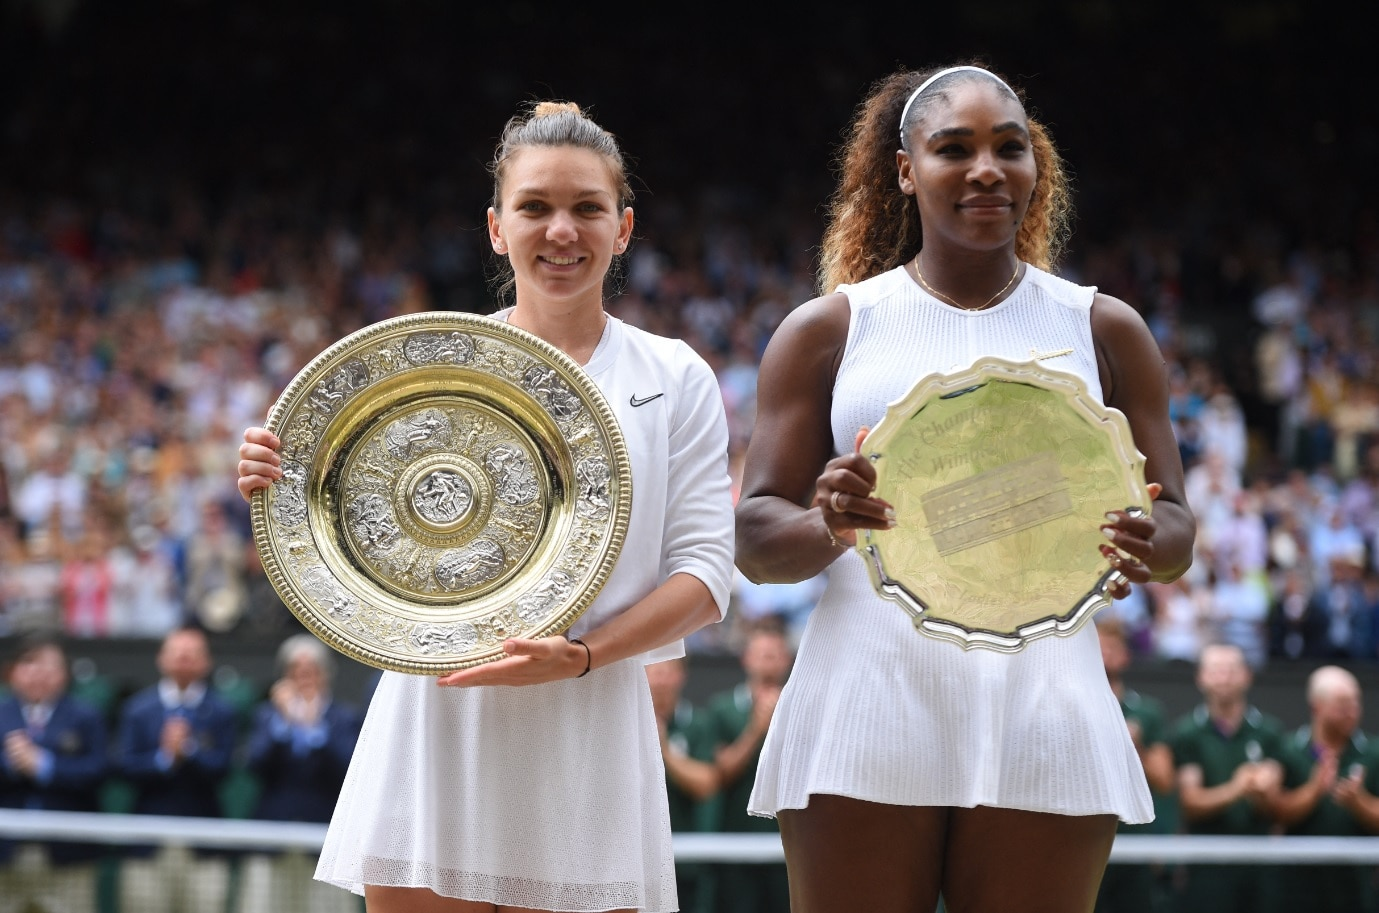 Halep triumphs at Wimbledon